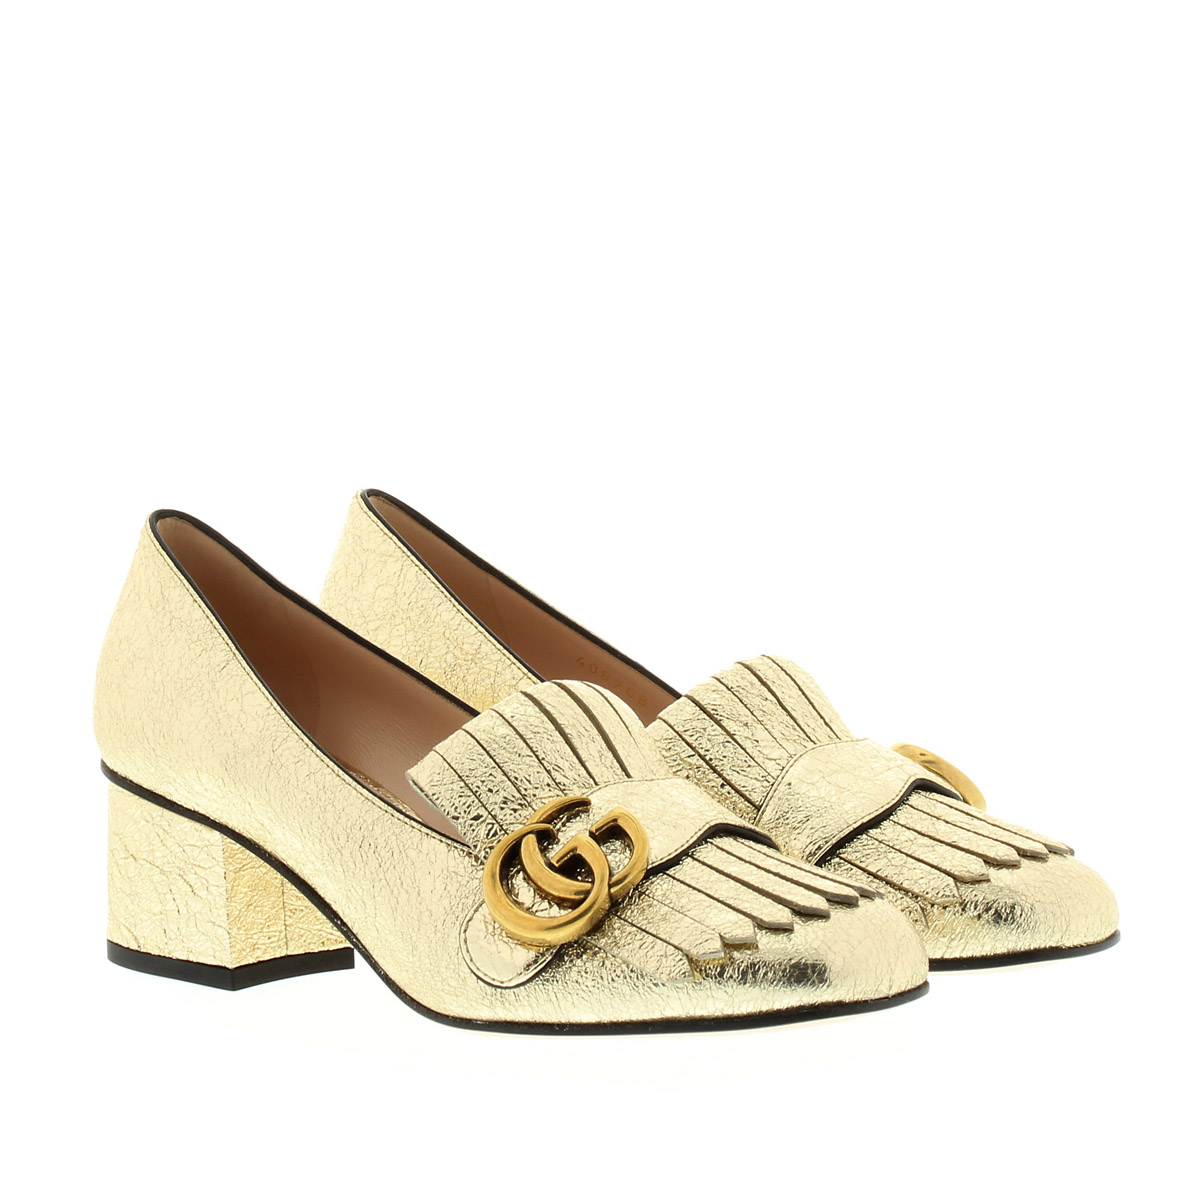 Fashionette Gucci Pump